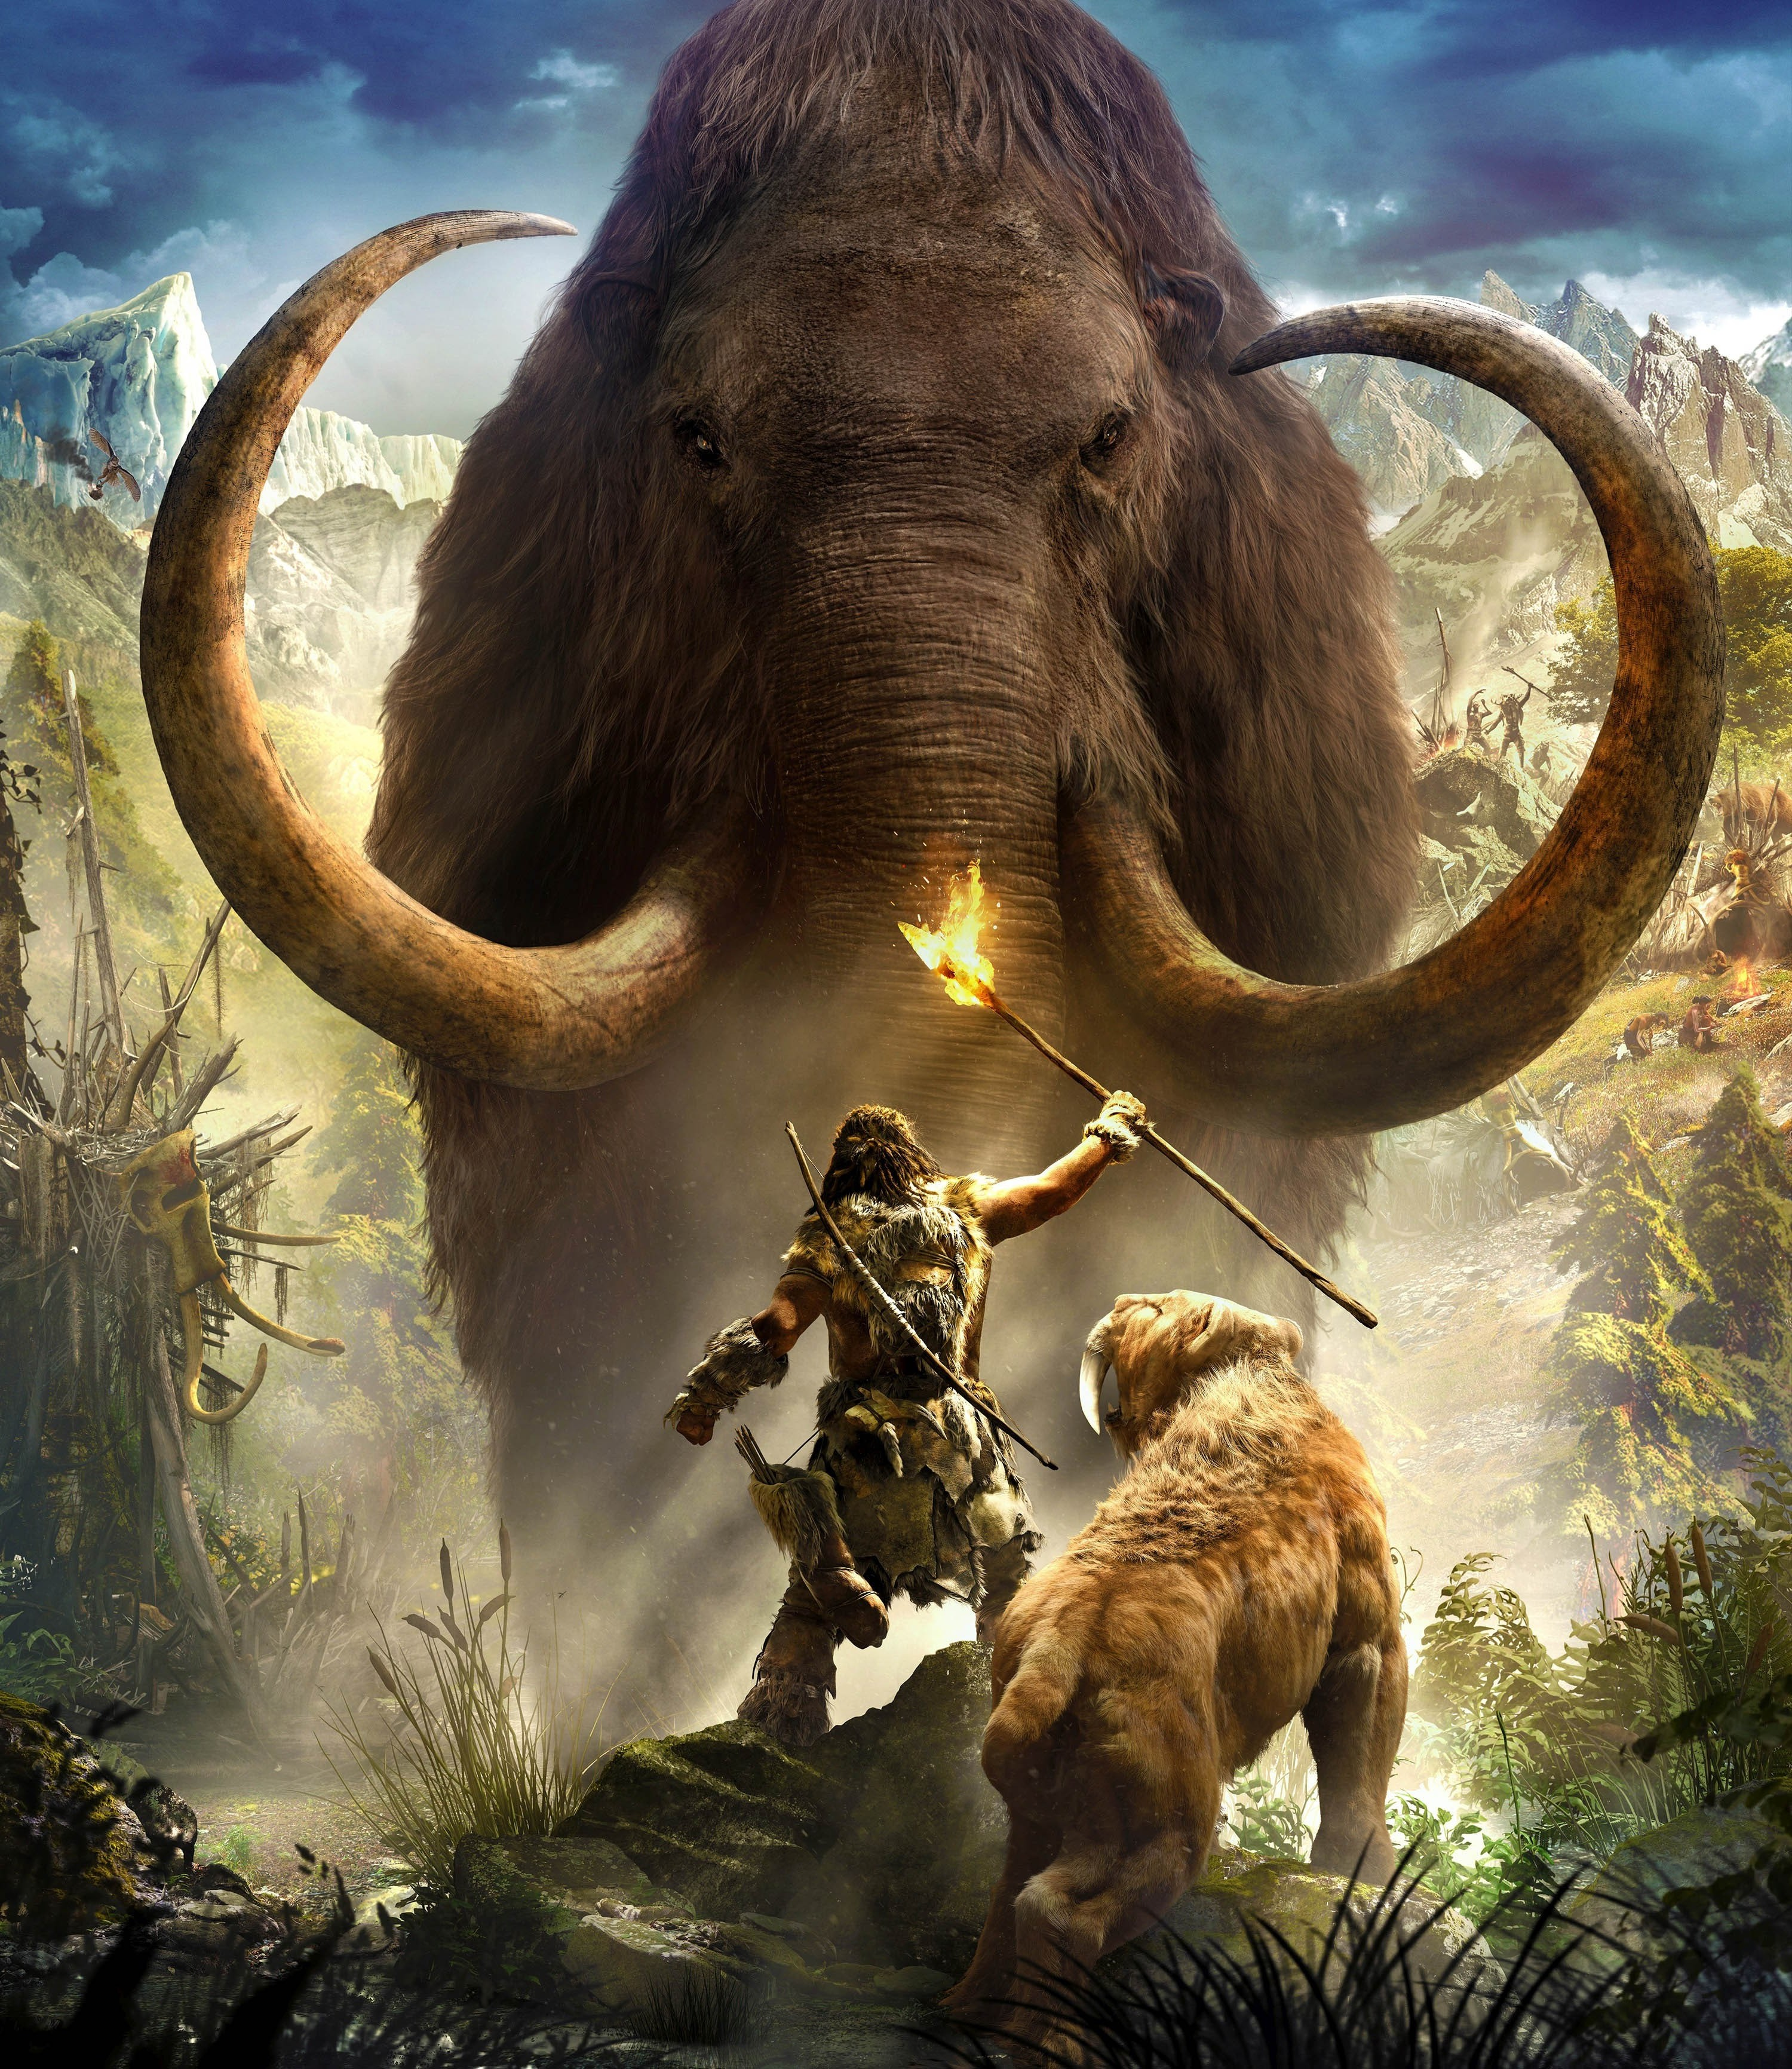 Saber Tooth Tiger 3d Wallpaper Far Cry Primal Artwork Video Games Wallpapers Hd